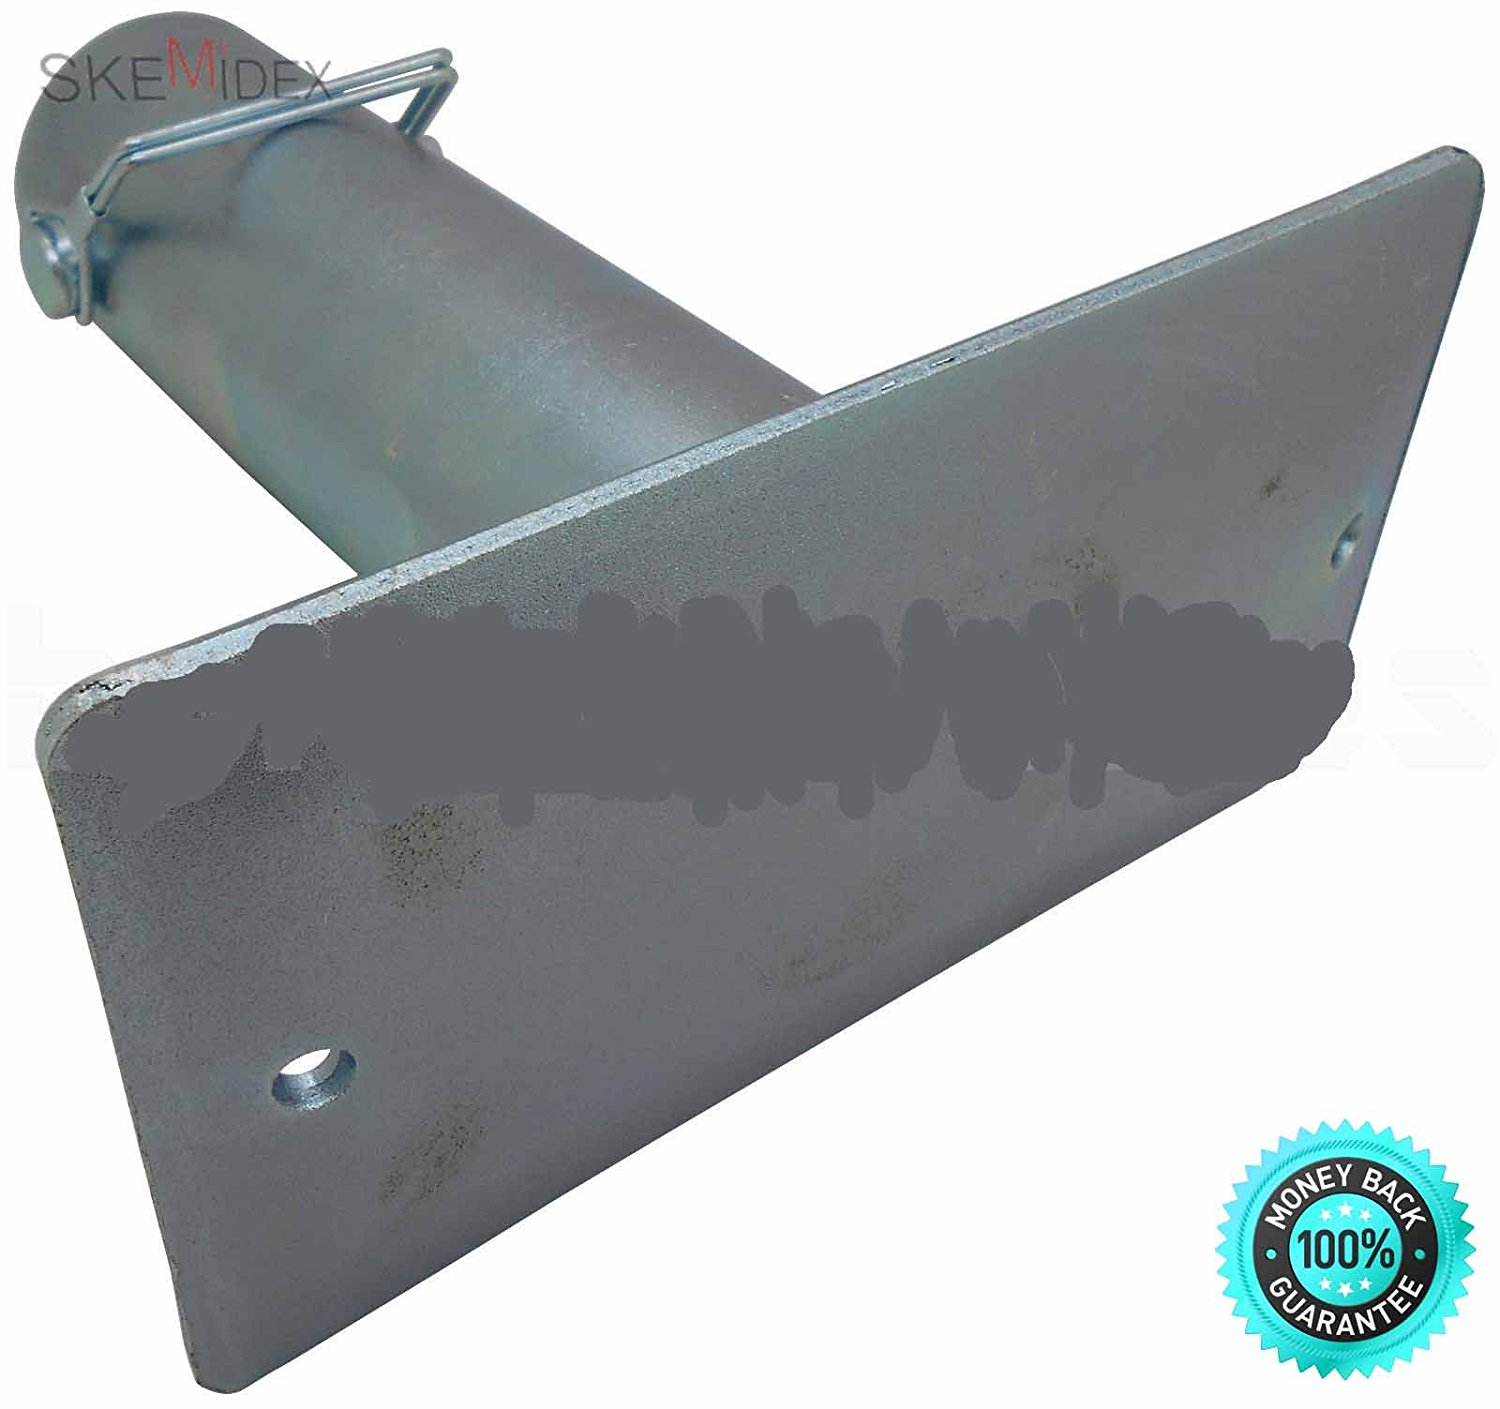 """SKEMiDEX--- RV Trailer Canopy 7-1/2"""" Tongue Jack Foot Stand Foot 2,000Ibs Zinc Plated H-D Carbon steel body with zinc plated. Easy to install and remove. 7-1/2"""" stand foot. Base Dimension: 13/32"""" x 4."""